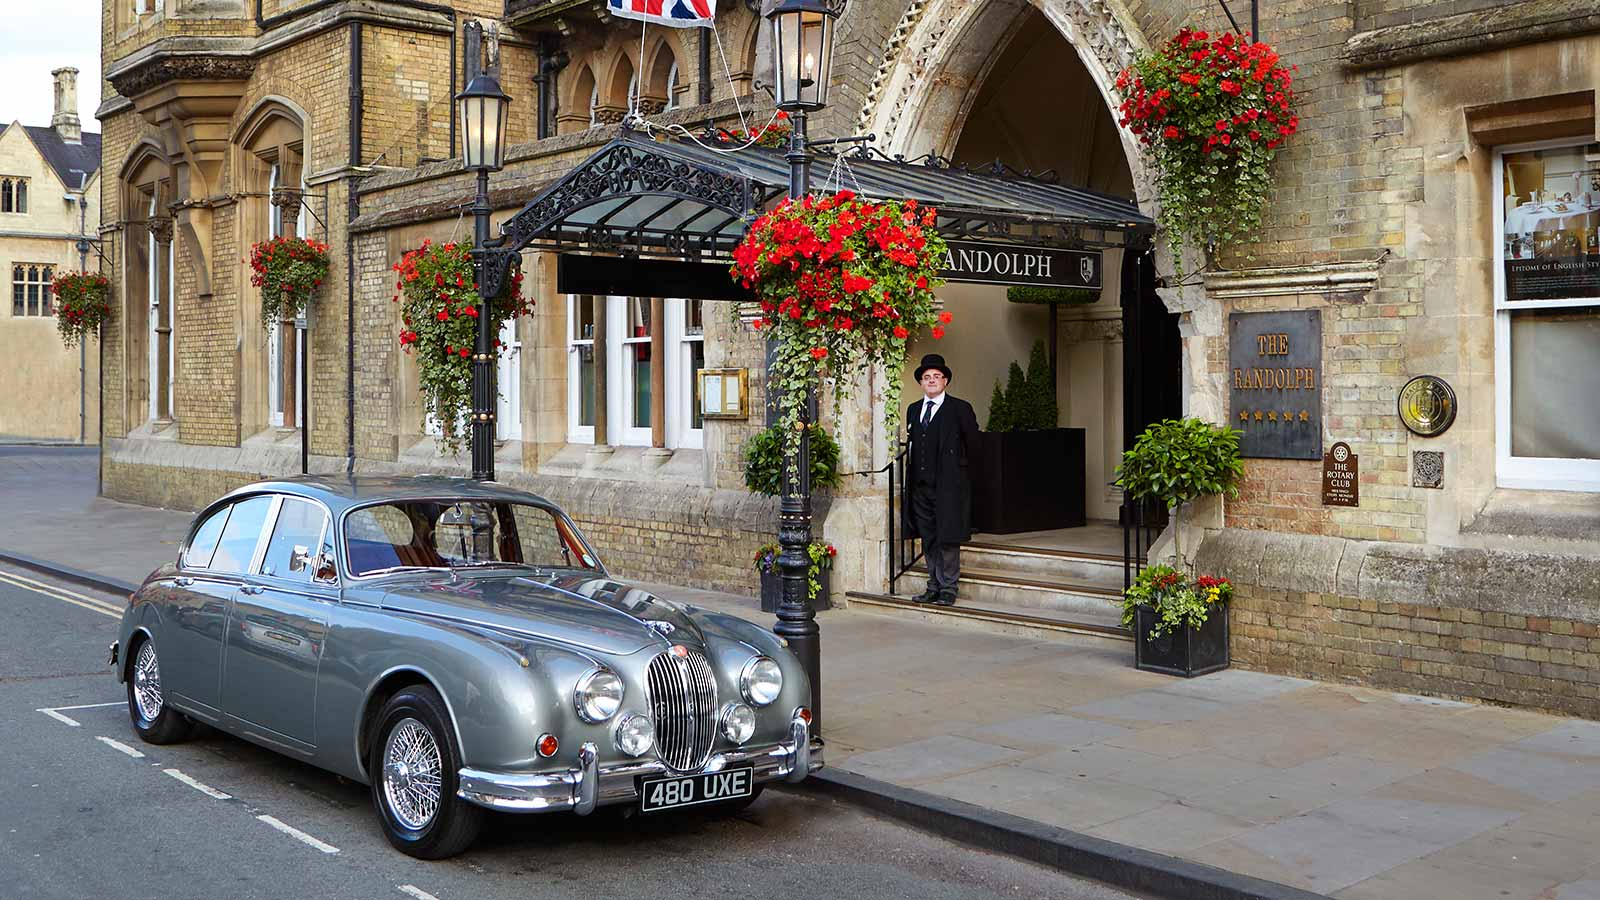 Macdonald randolph hotel five star hotels oxford for Luxury hotel oxford